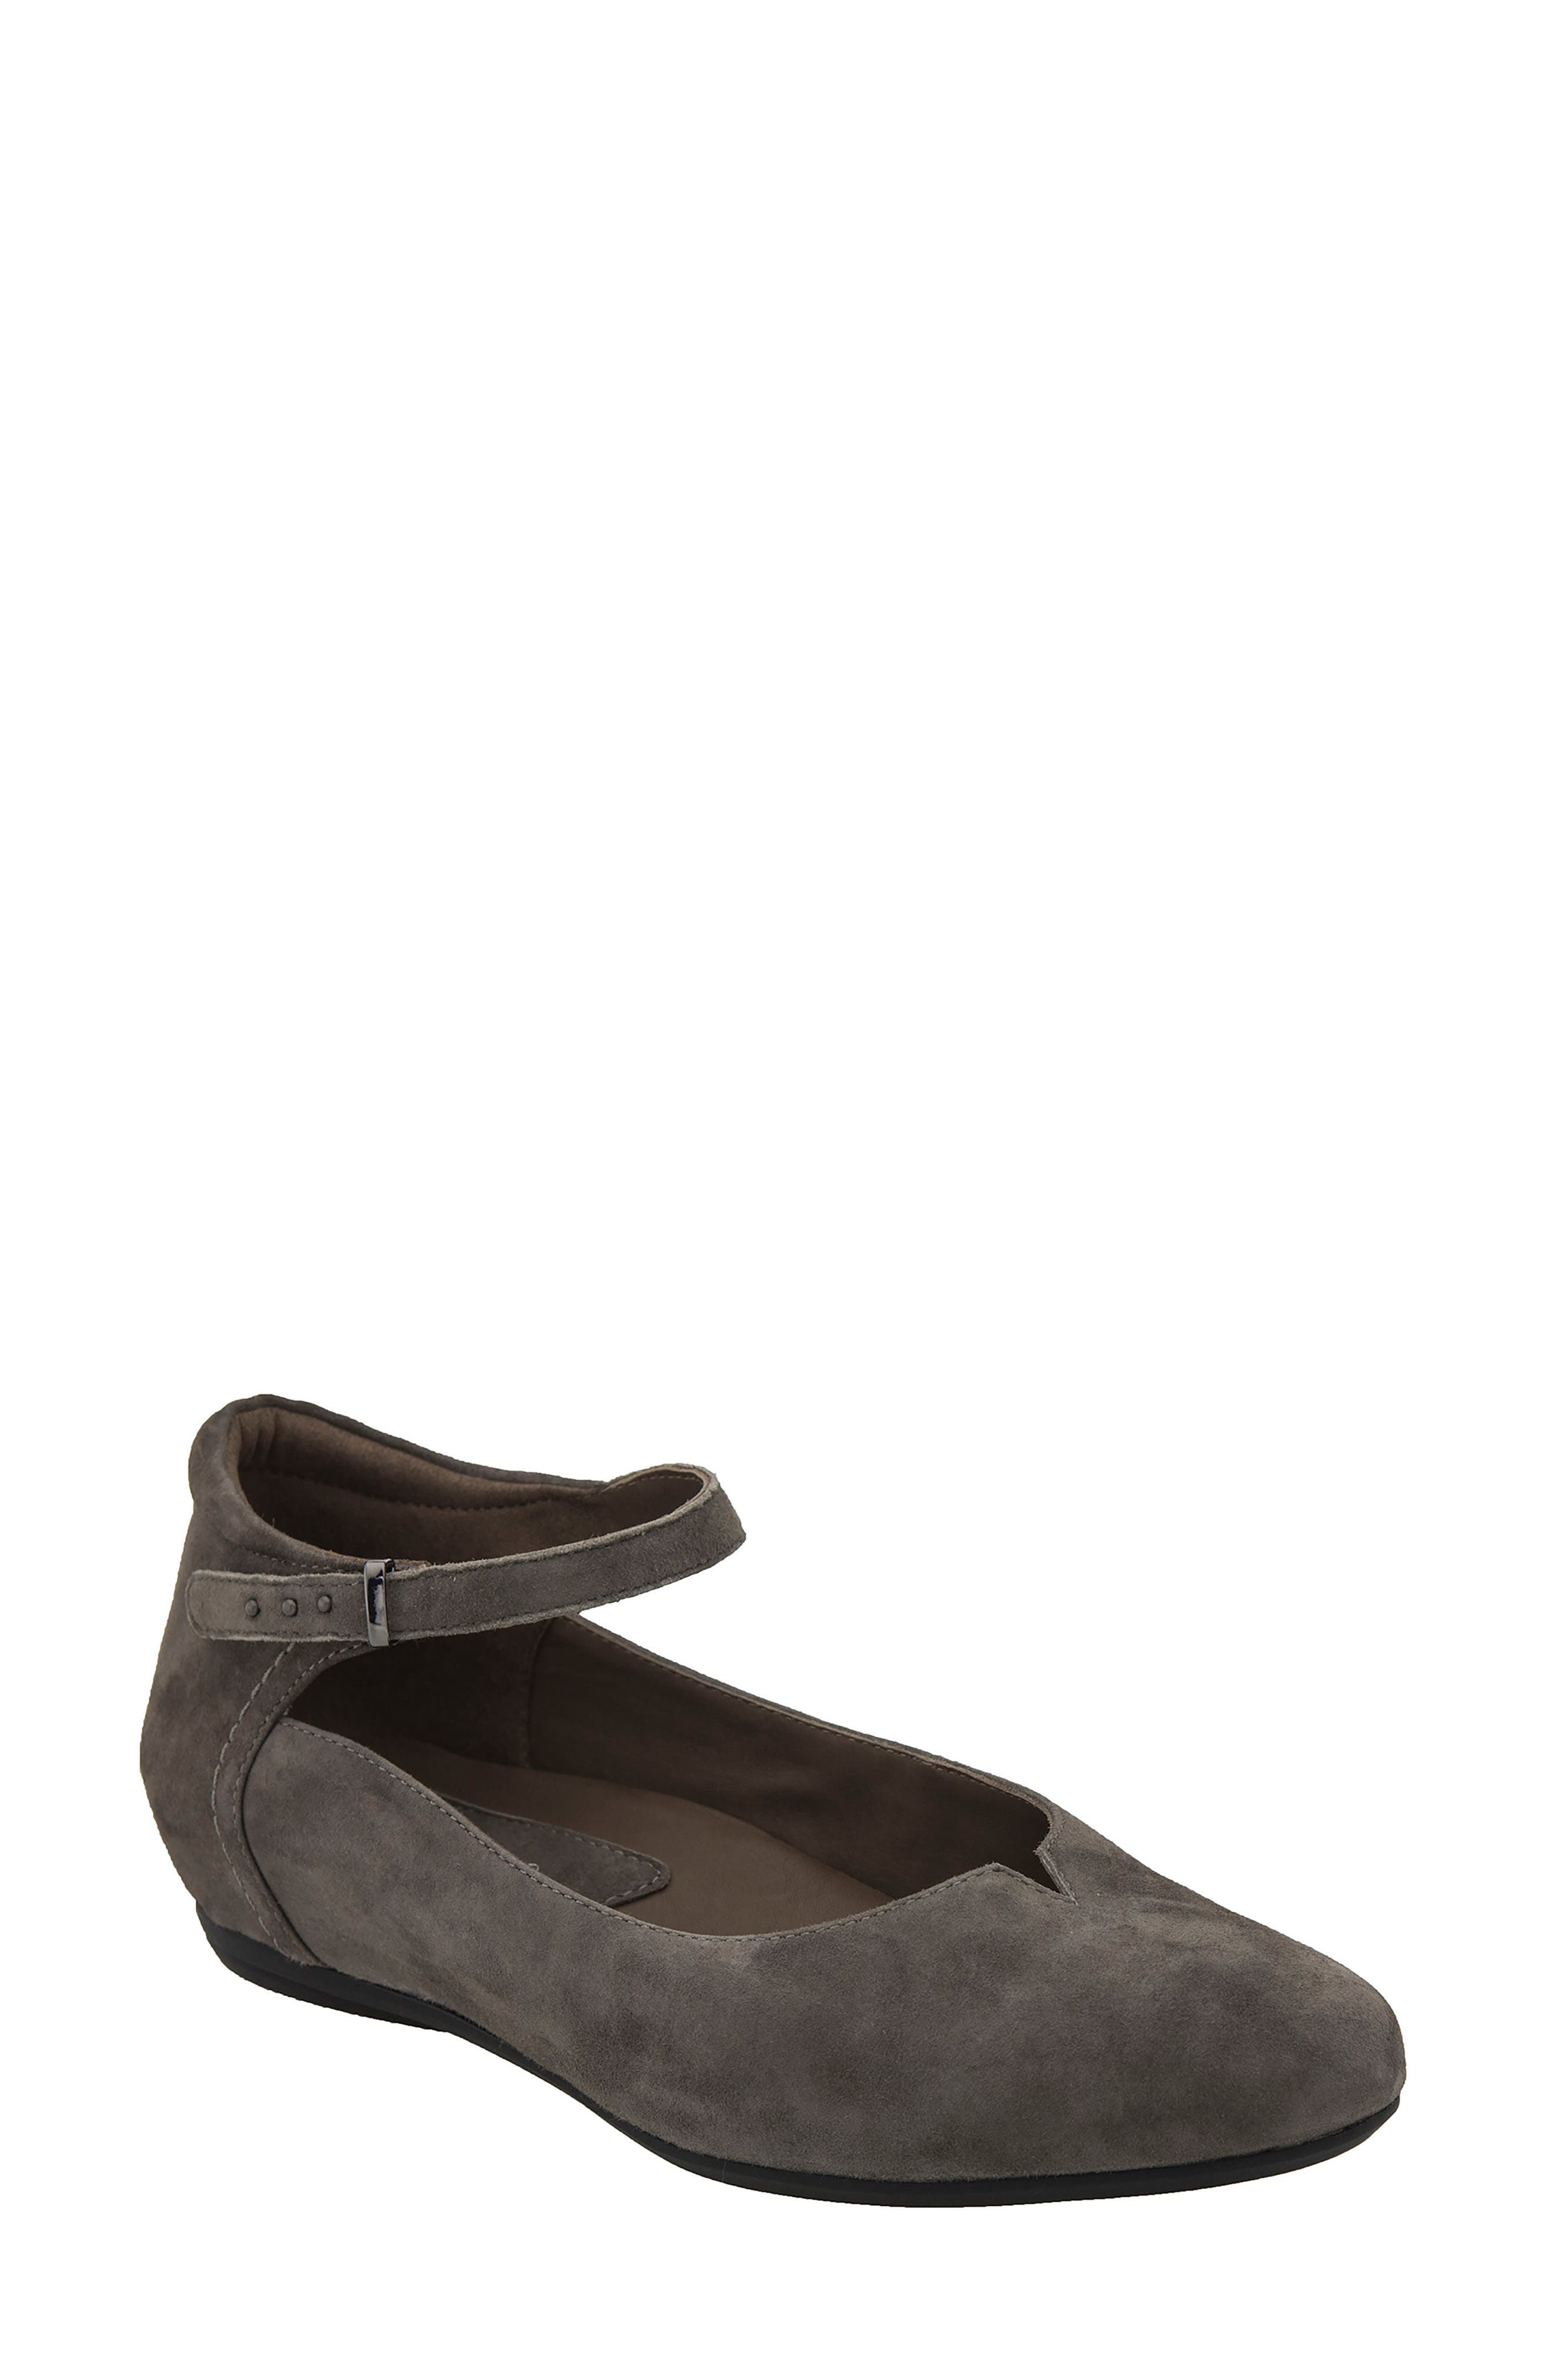 Alternate Image 1 Selected - Earthies® Emery Ankle Strap Flat (Women)